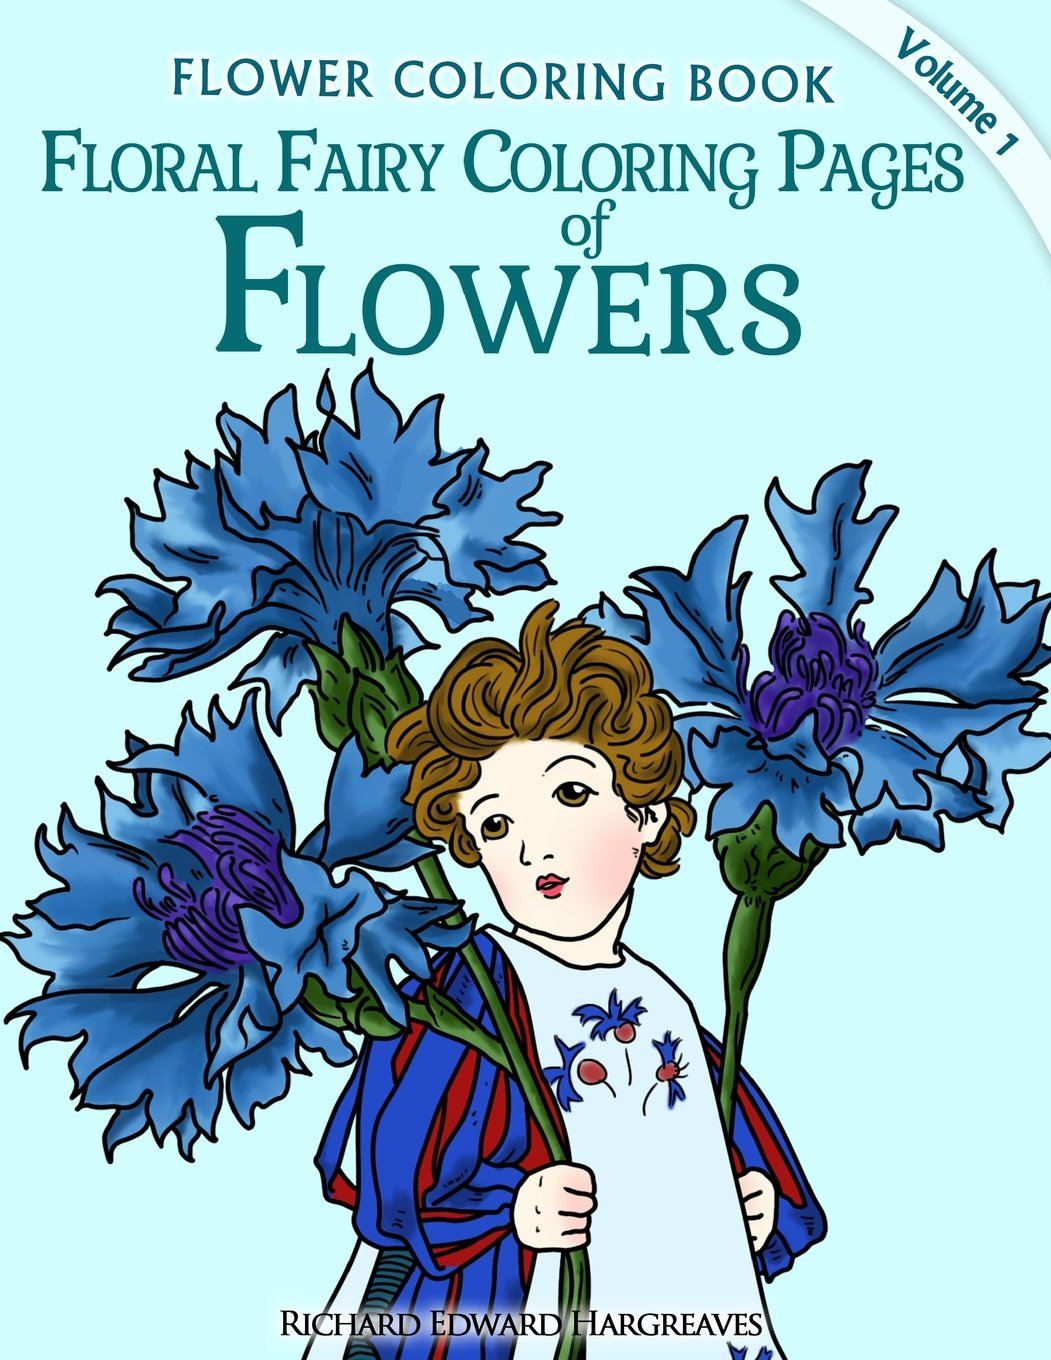 Amazon.com: Floral Fairy Coloring Pages of Flowers - Flower Coloring ...